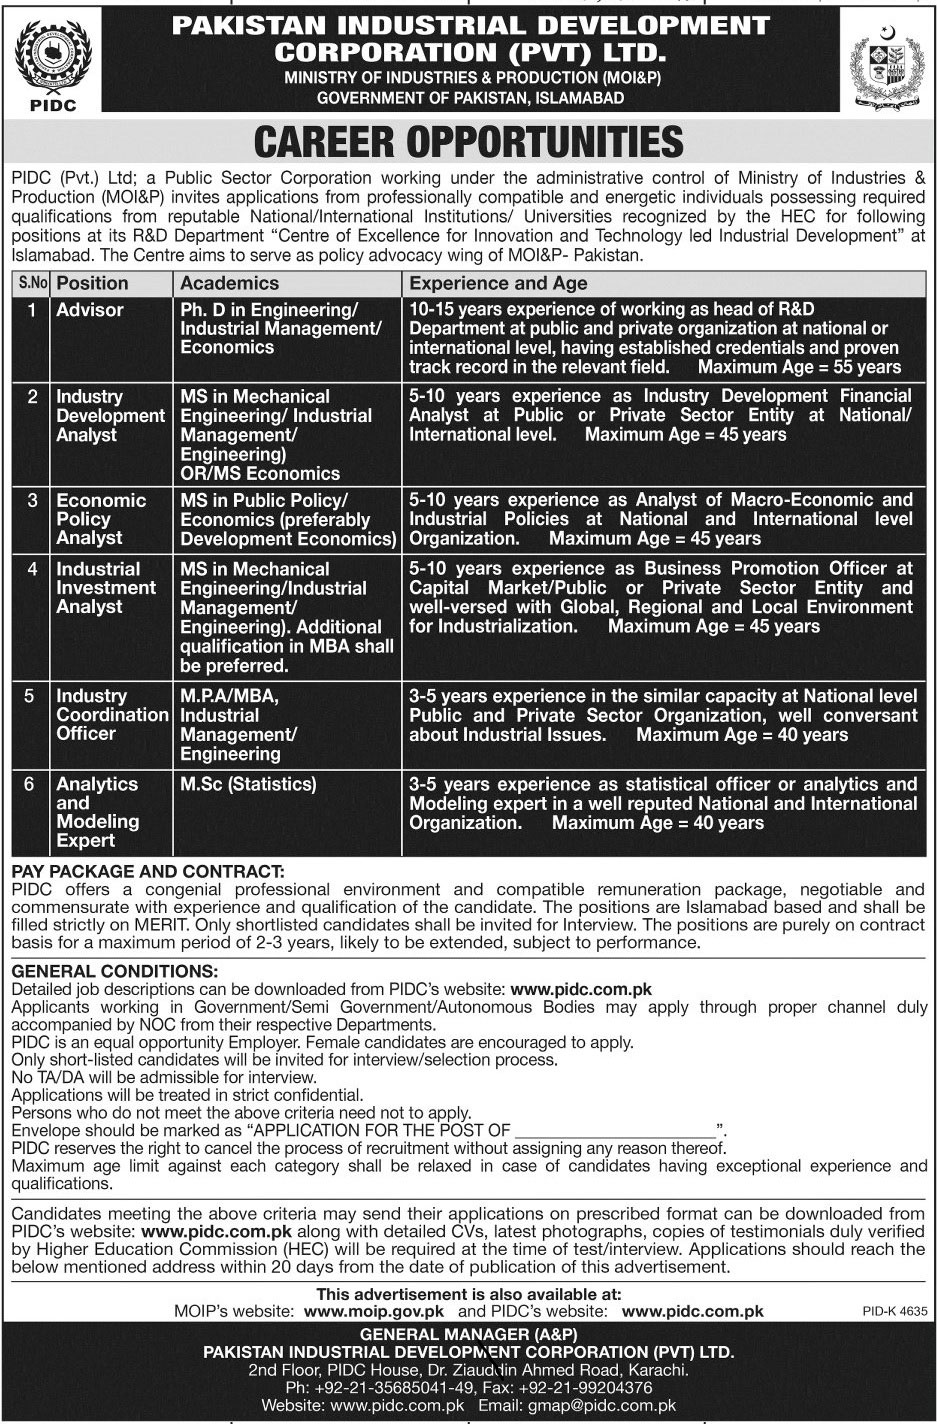 PIDC Jobs in Pakistan Industrial Development Corporation Islamabad  11 June 2017